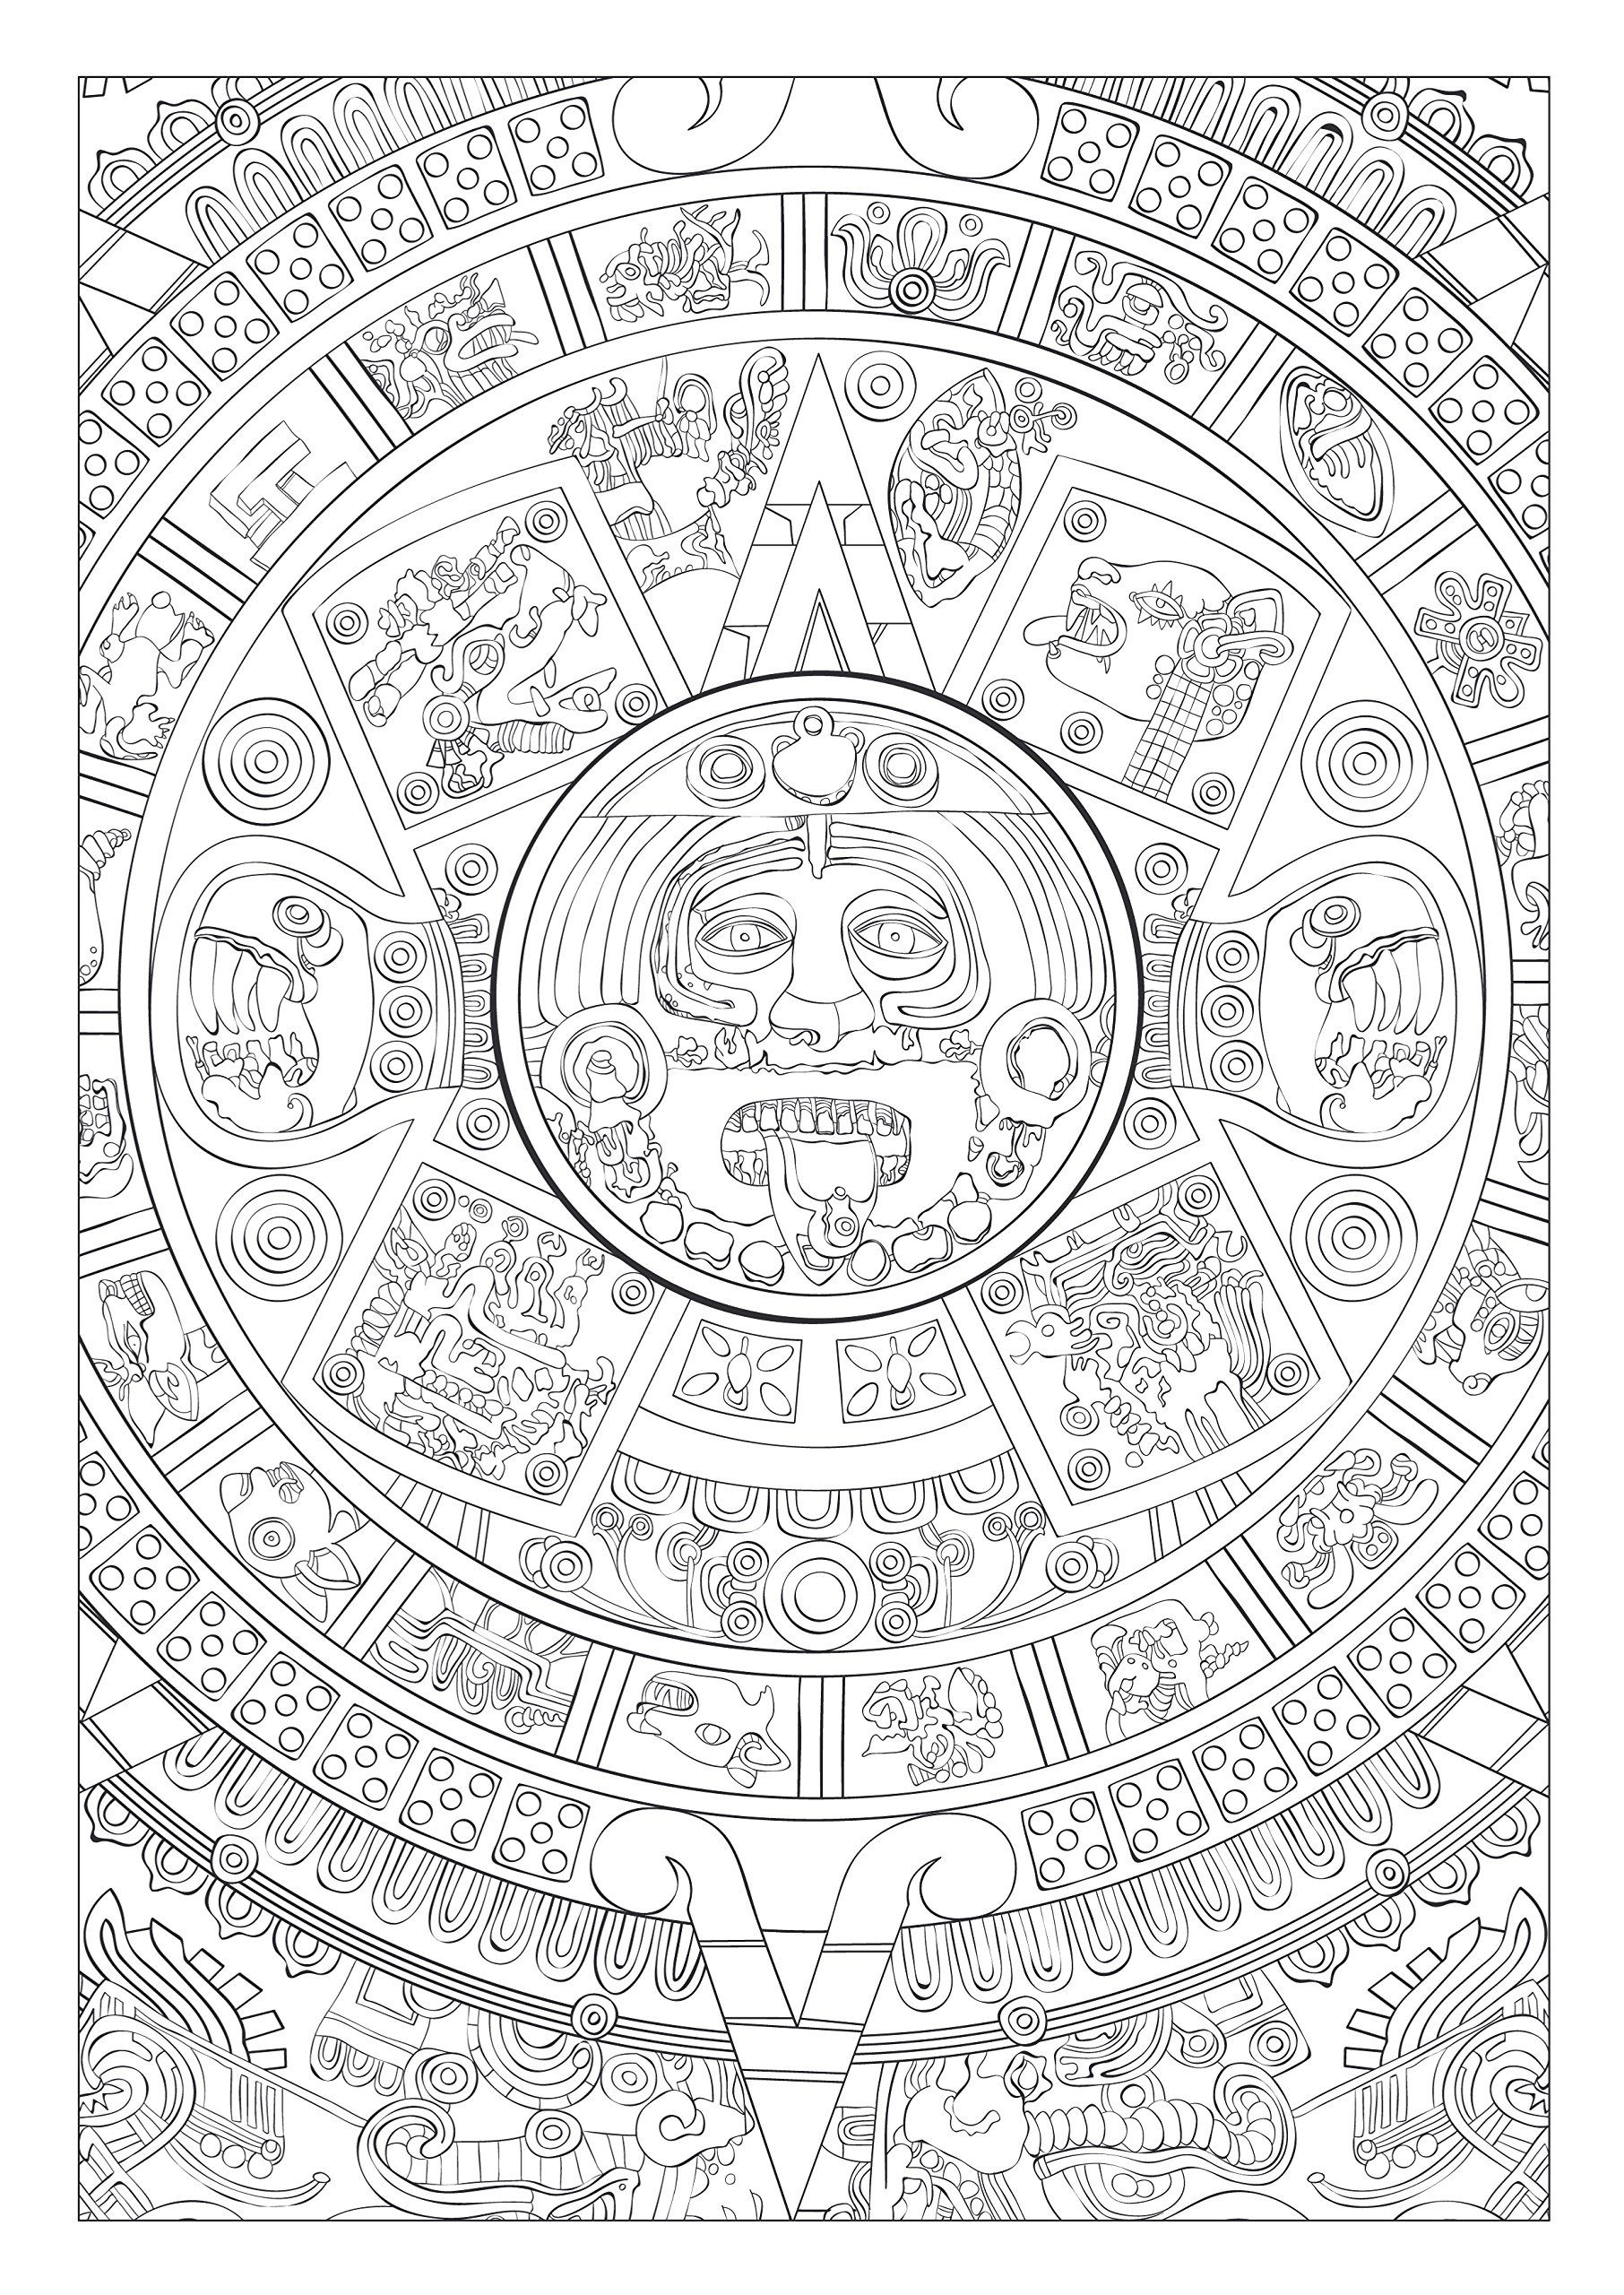 Colourtation anti stress colouring book for adults volume 1 - Art Therapie Mayas Et Azt Ques 100 Coloriages Anti Stress French Edition Collectif Hachette Books Download Image Co Colourtation Anti Stress Colouring